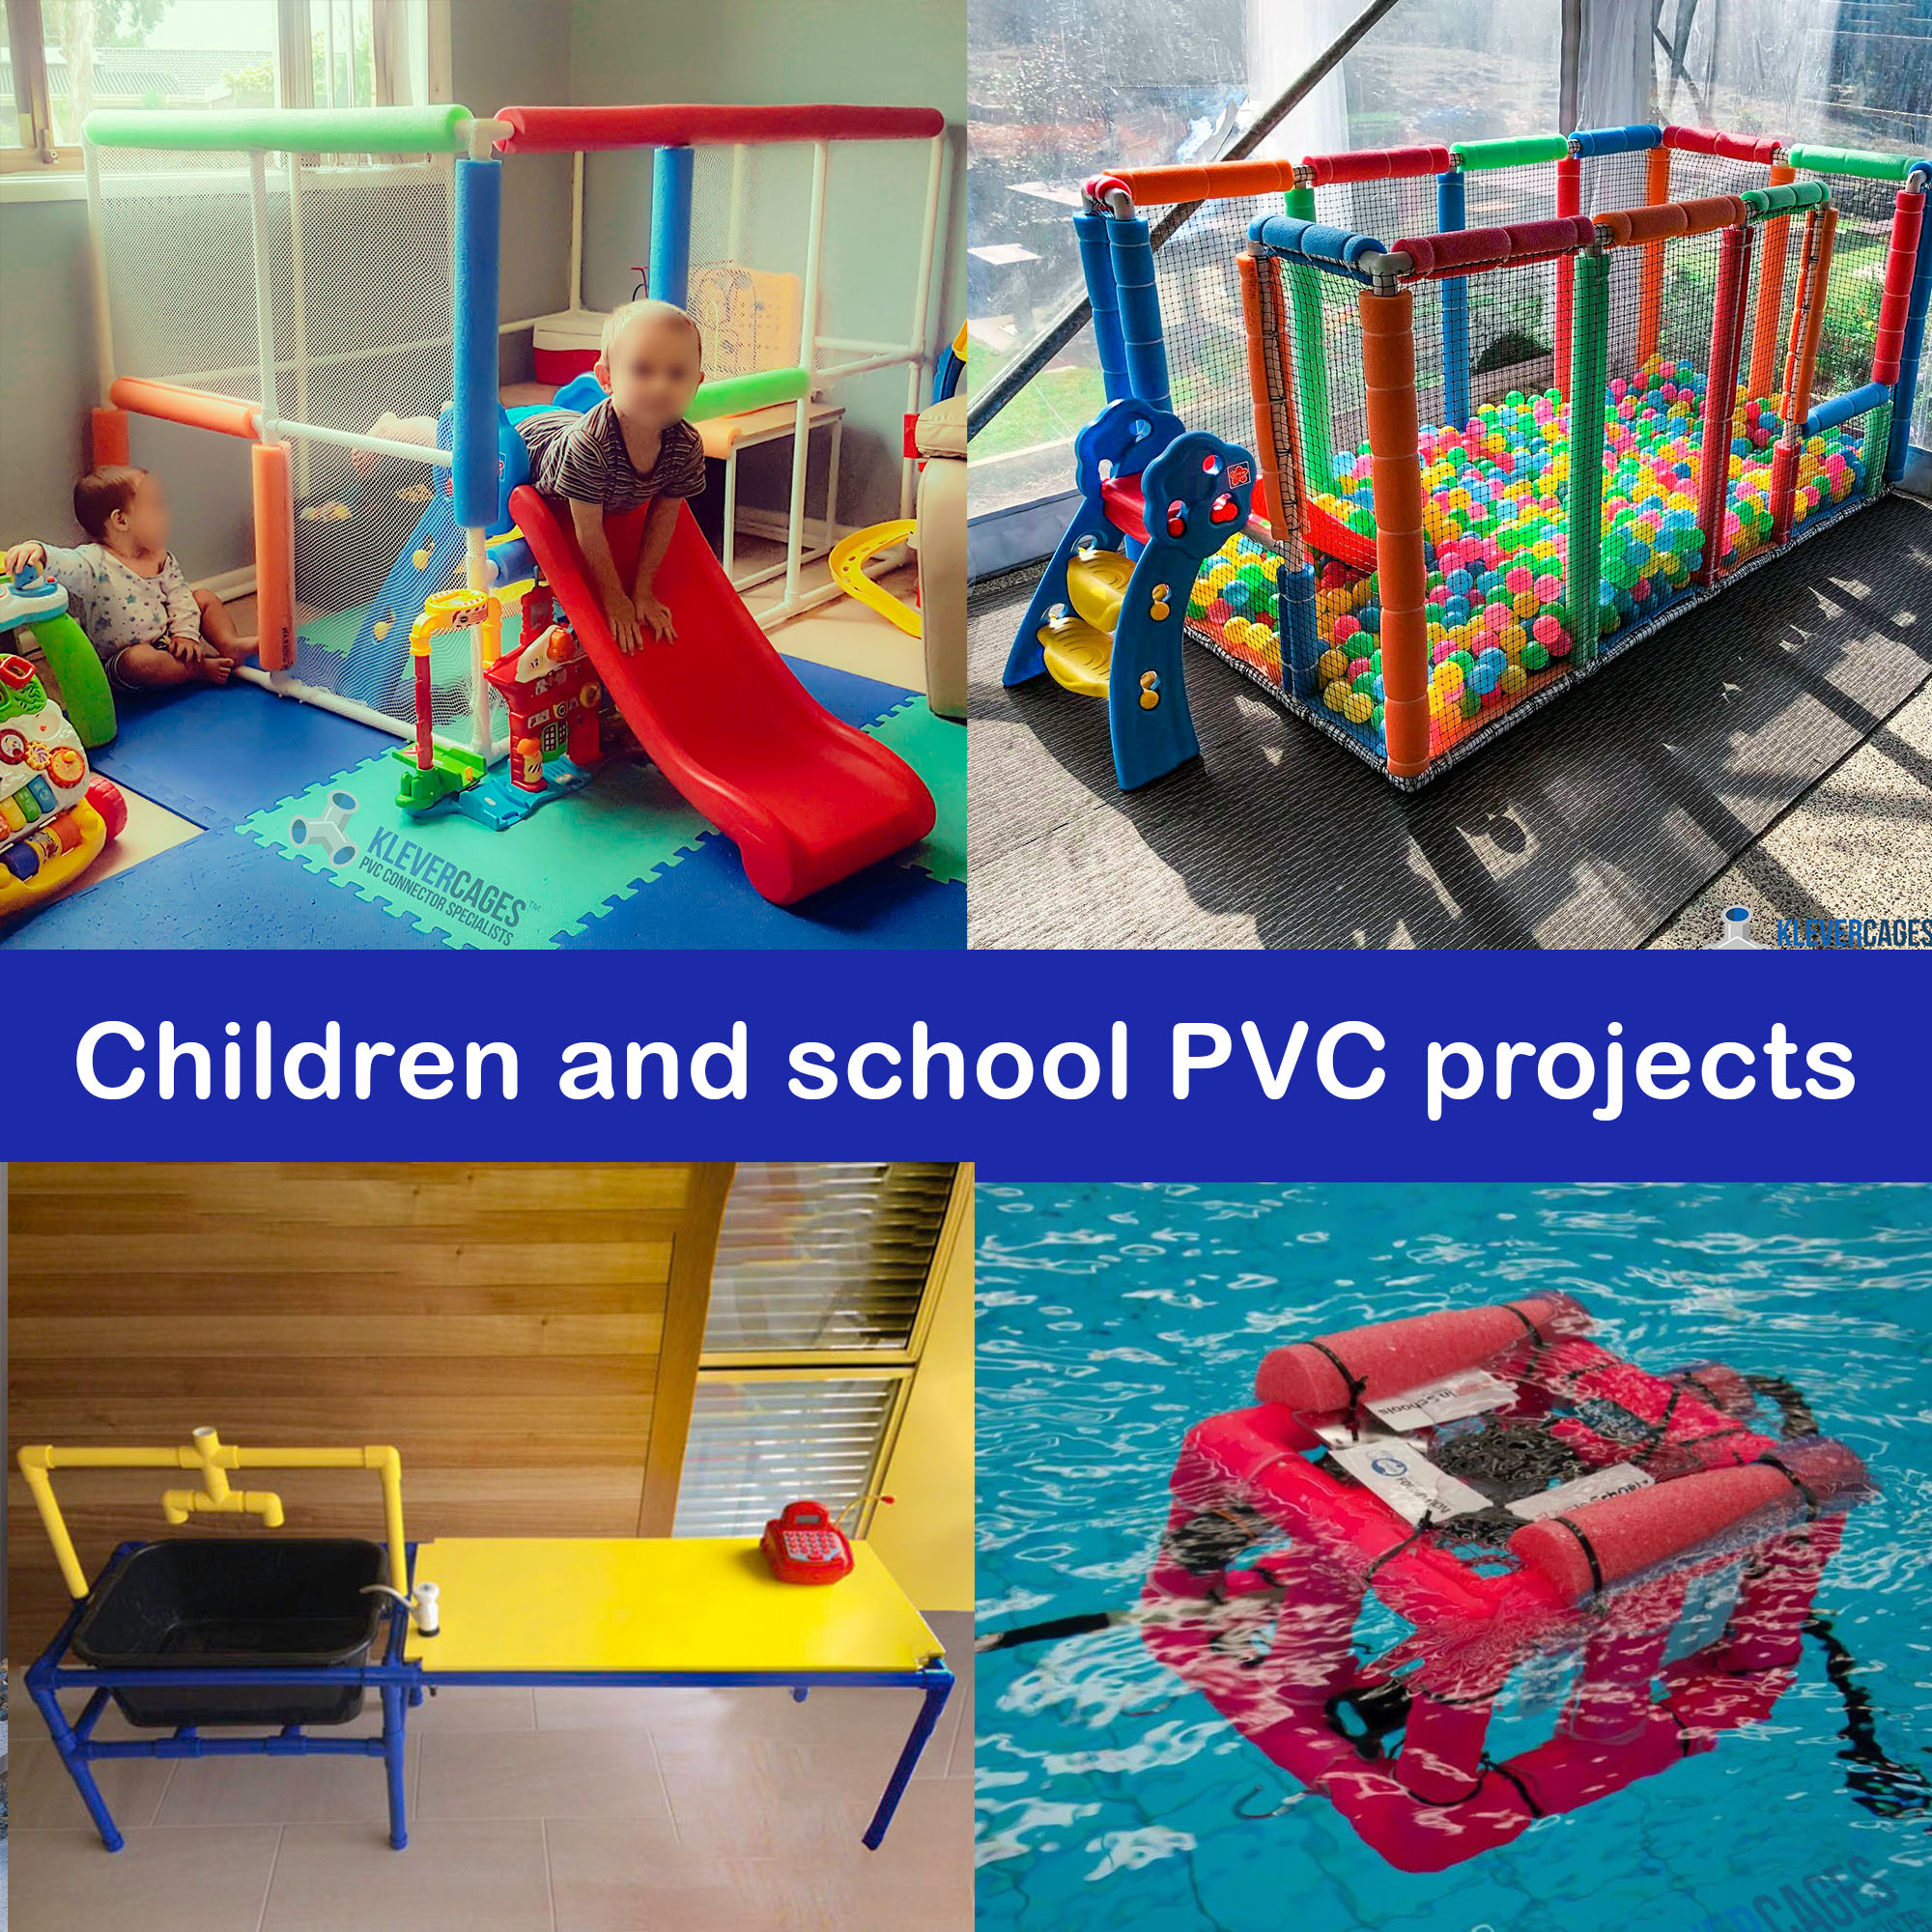 PVC projects for children and schools with PVC pipe and connector fittings from Klever cages , water play table, school subs, ball pit and kids play house